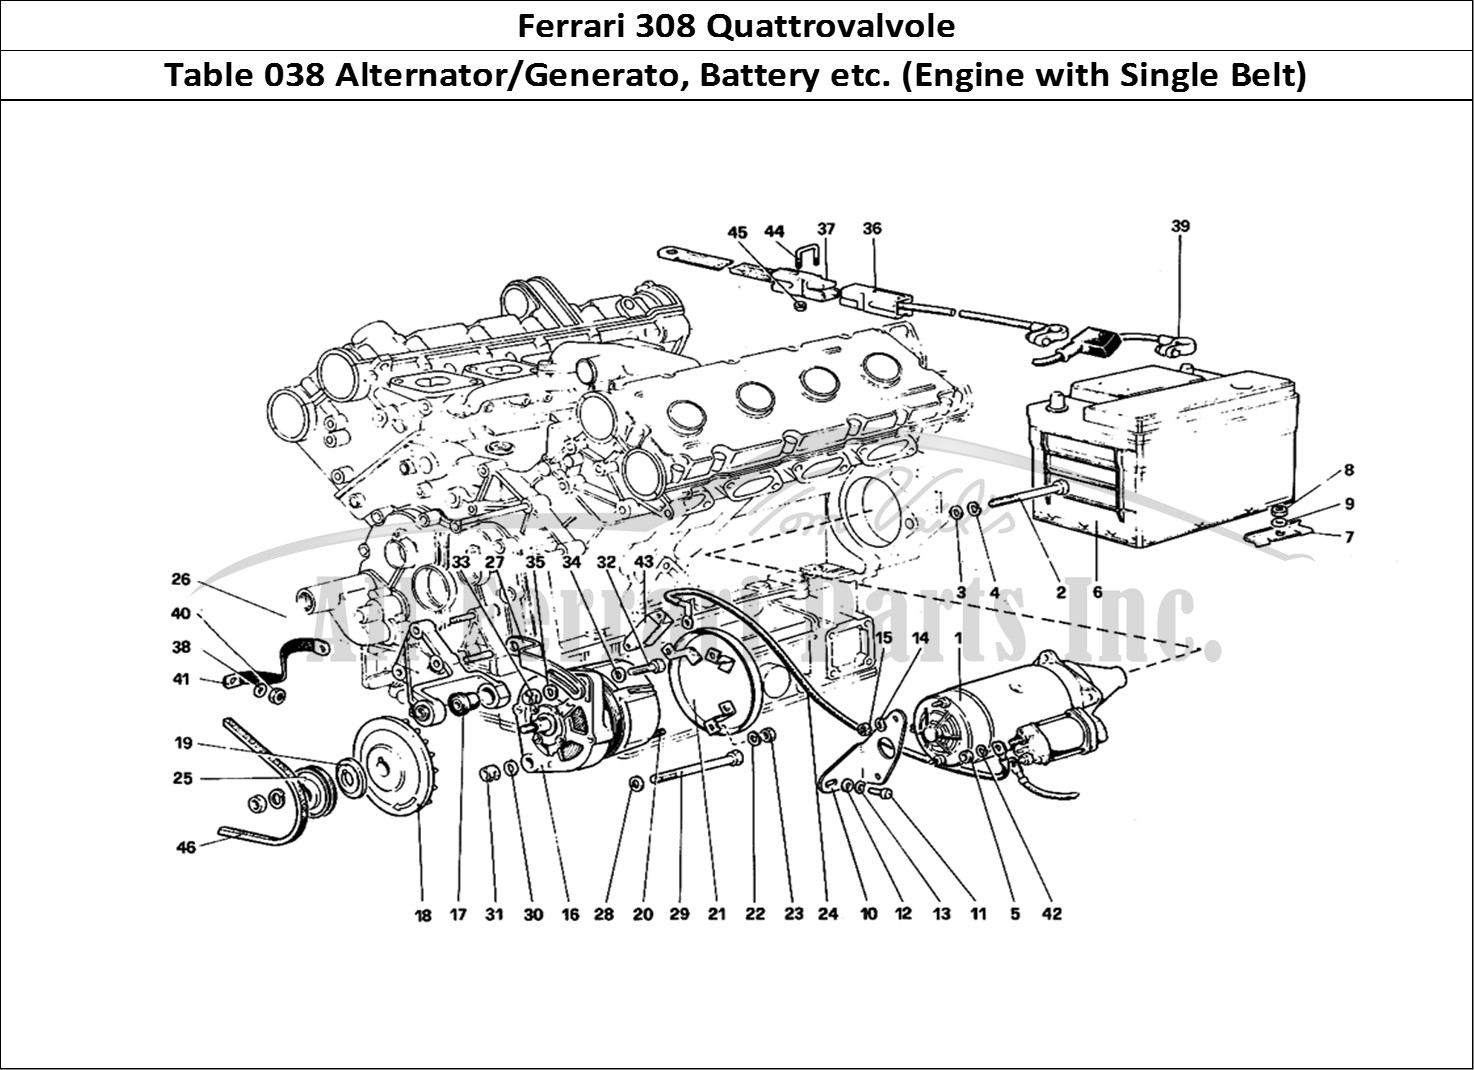 Buy original Ferrari 308 Quattrovalvole 038 Alternator